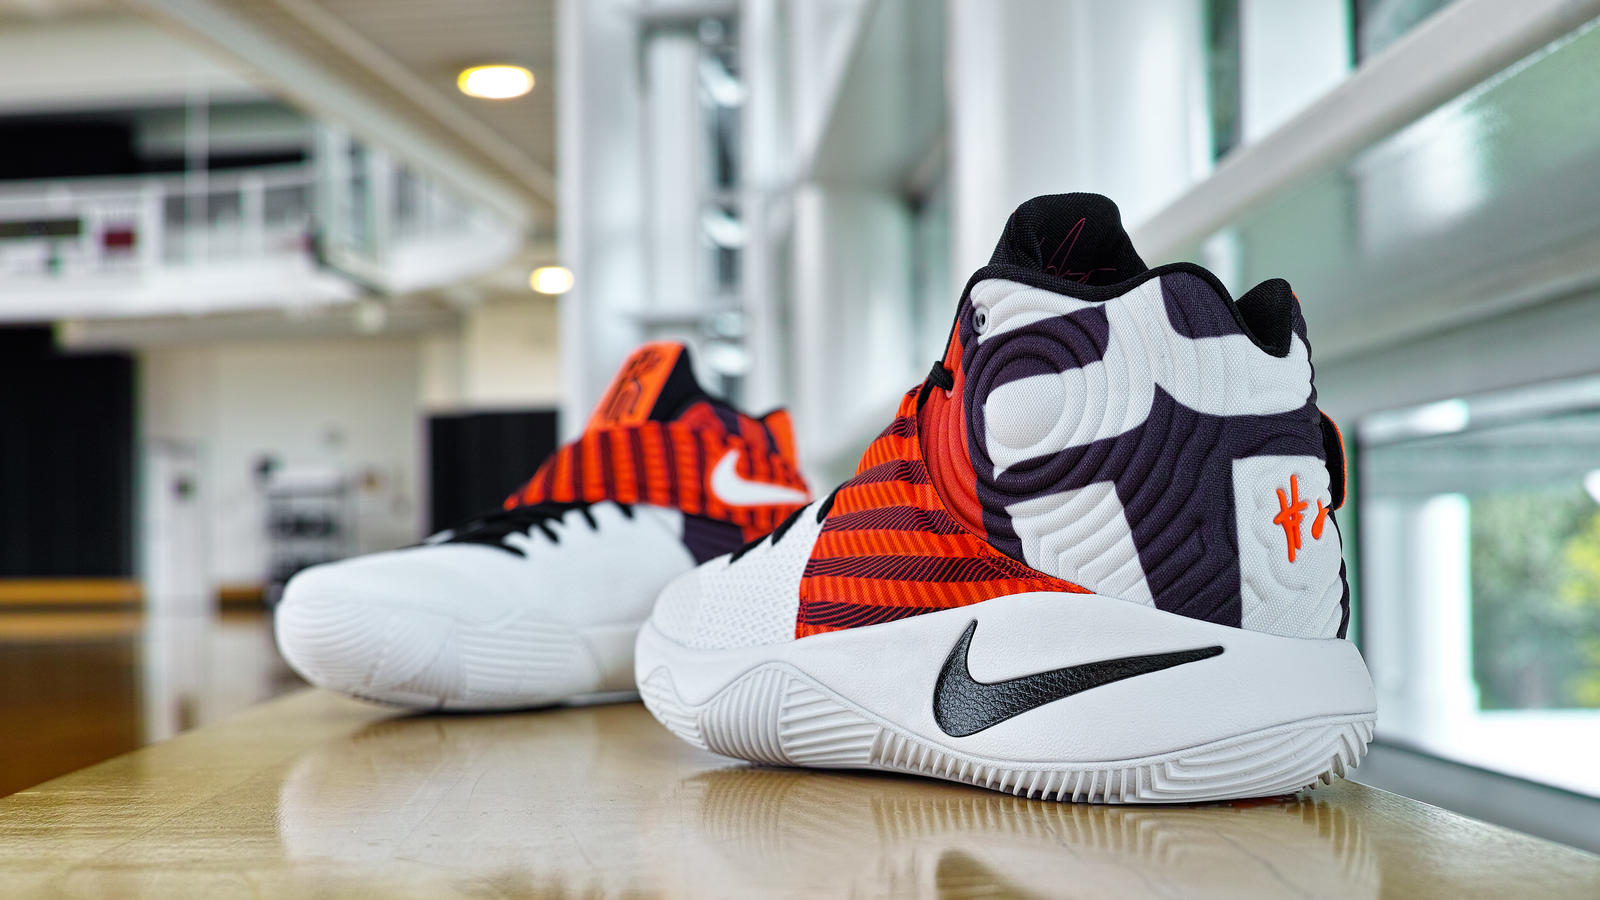 This Colorway of the Nike Kyrie 2 is Inspired by his Signature 'Crossover'-3